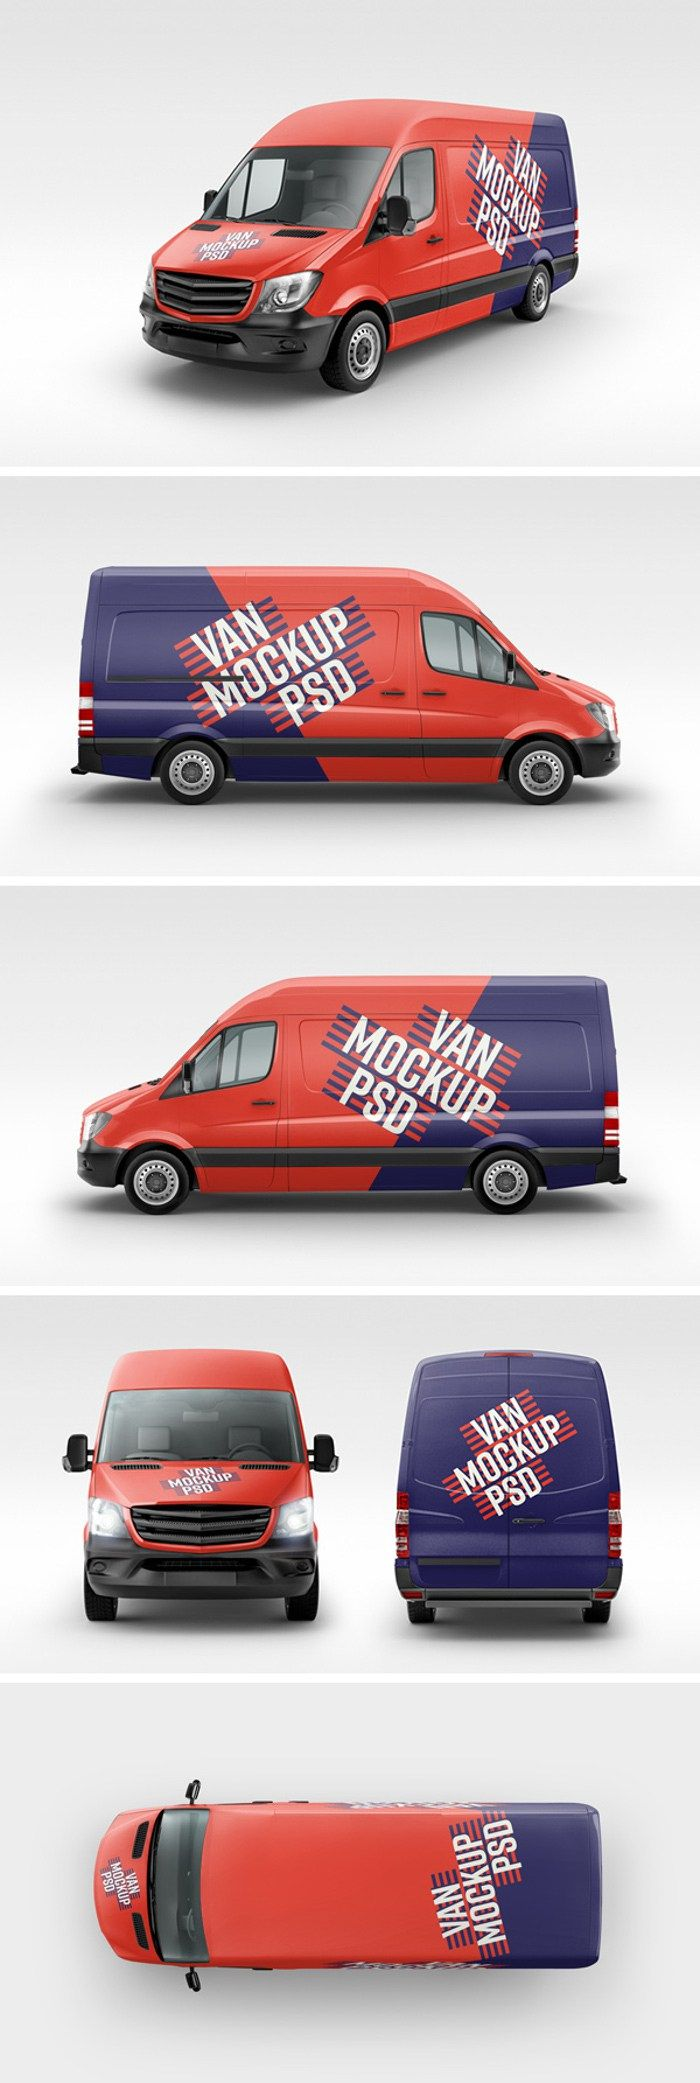 Van Mockup Psd Template By Graphicburger Mockup Free Psd Mockup Psd Graphic Design Mockup